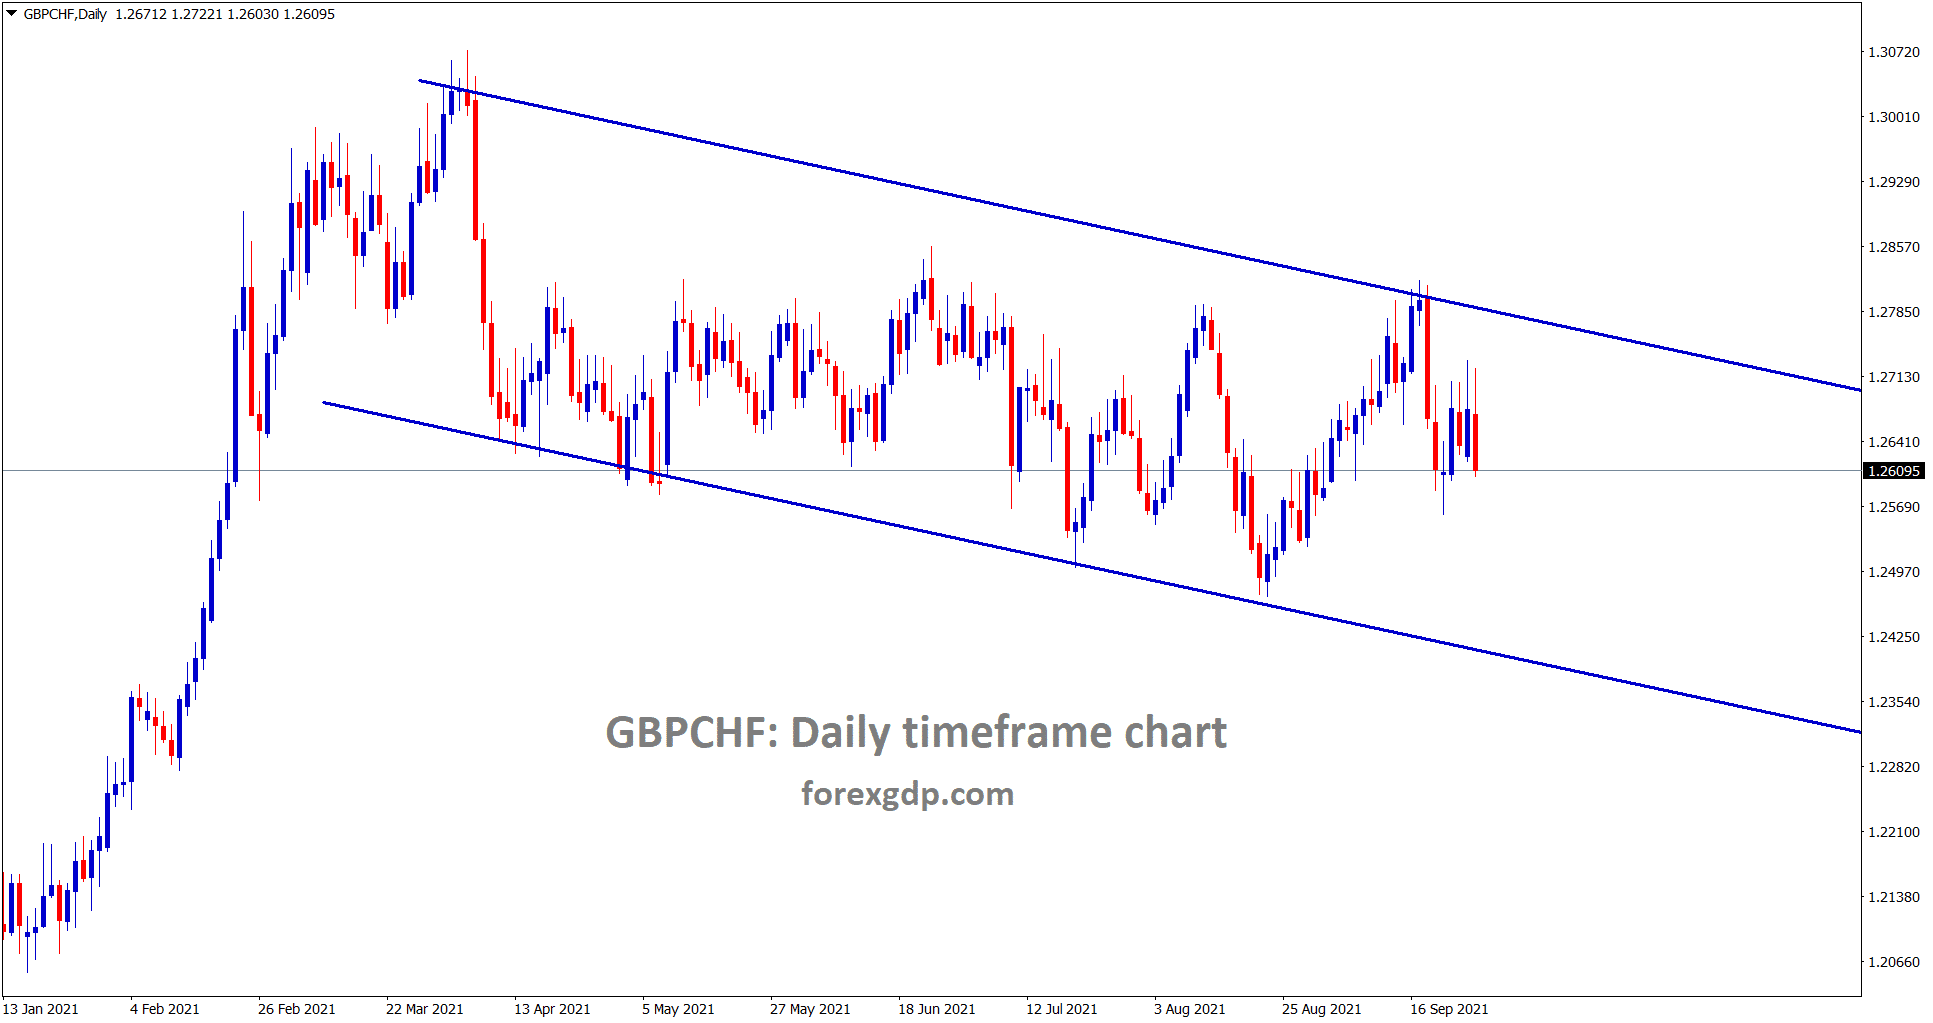 GBPCHF is moving in a downtrend line